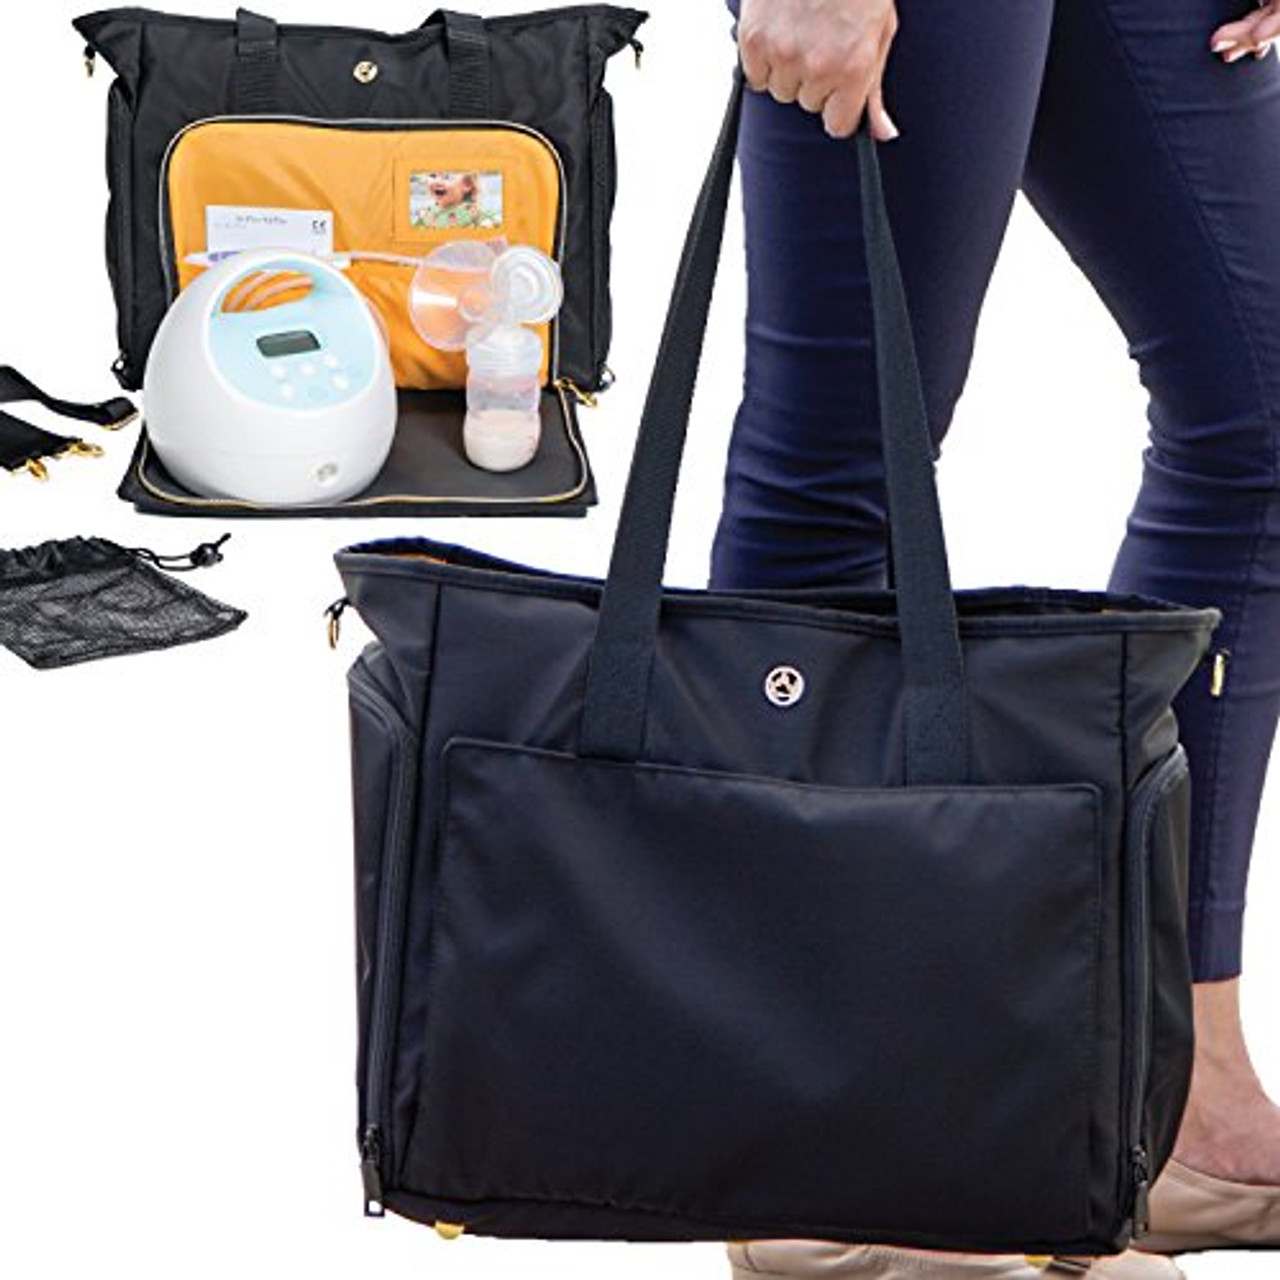 Zohzo Lauren Breast Pump Bag Portable Tote Bag Great For Travel